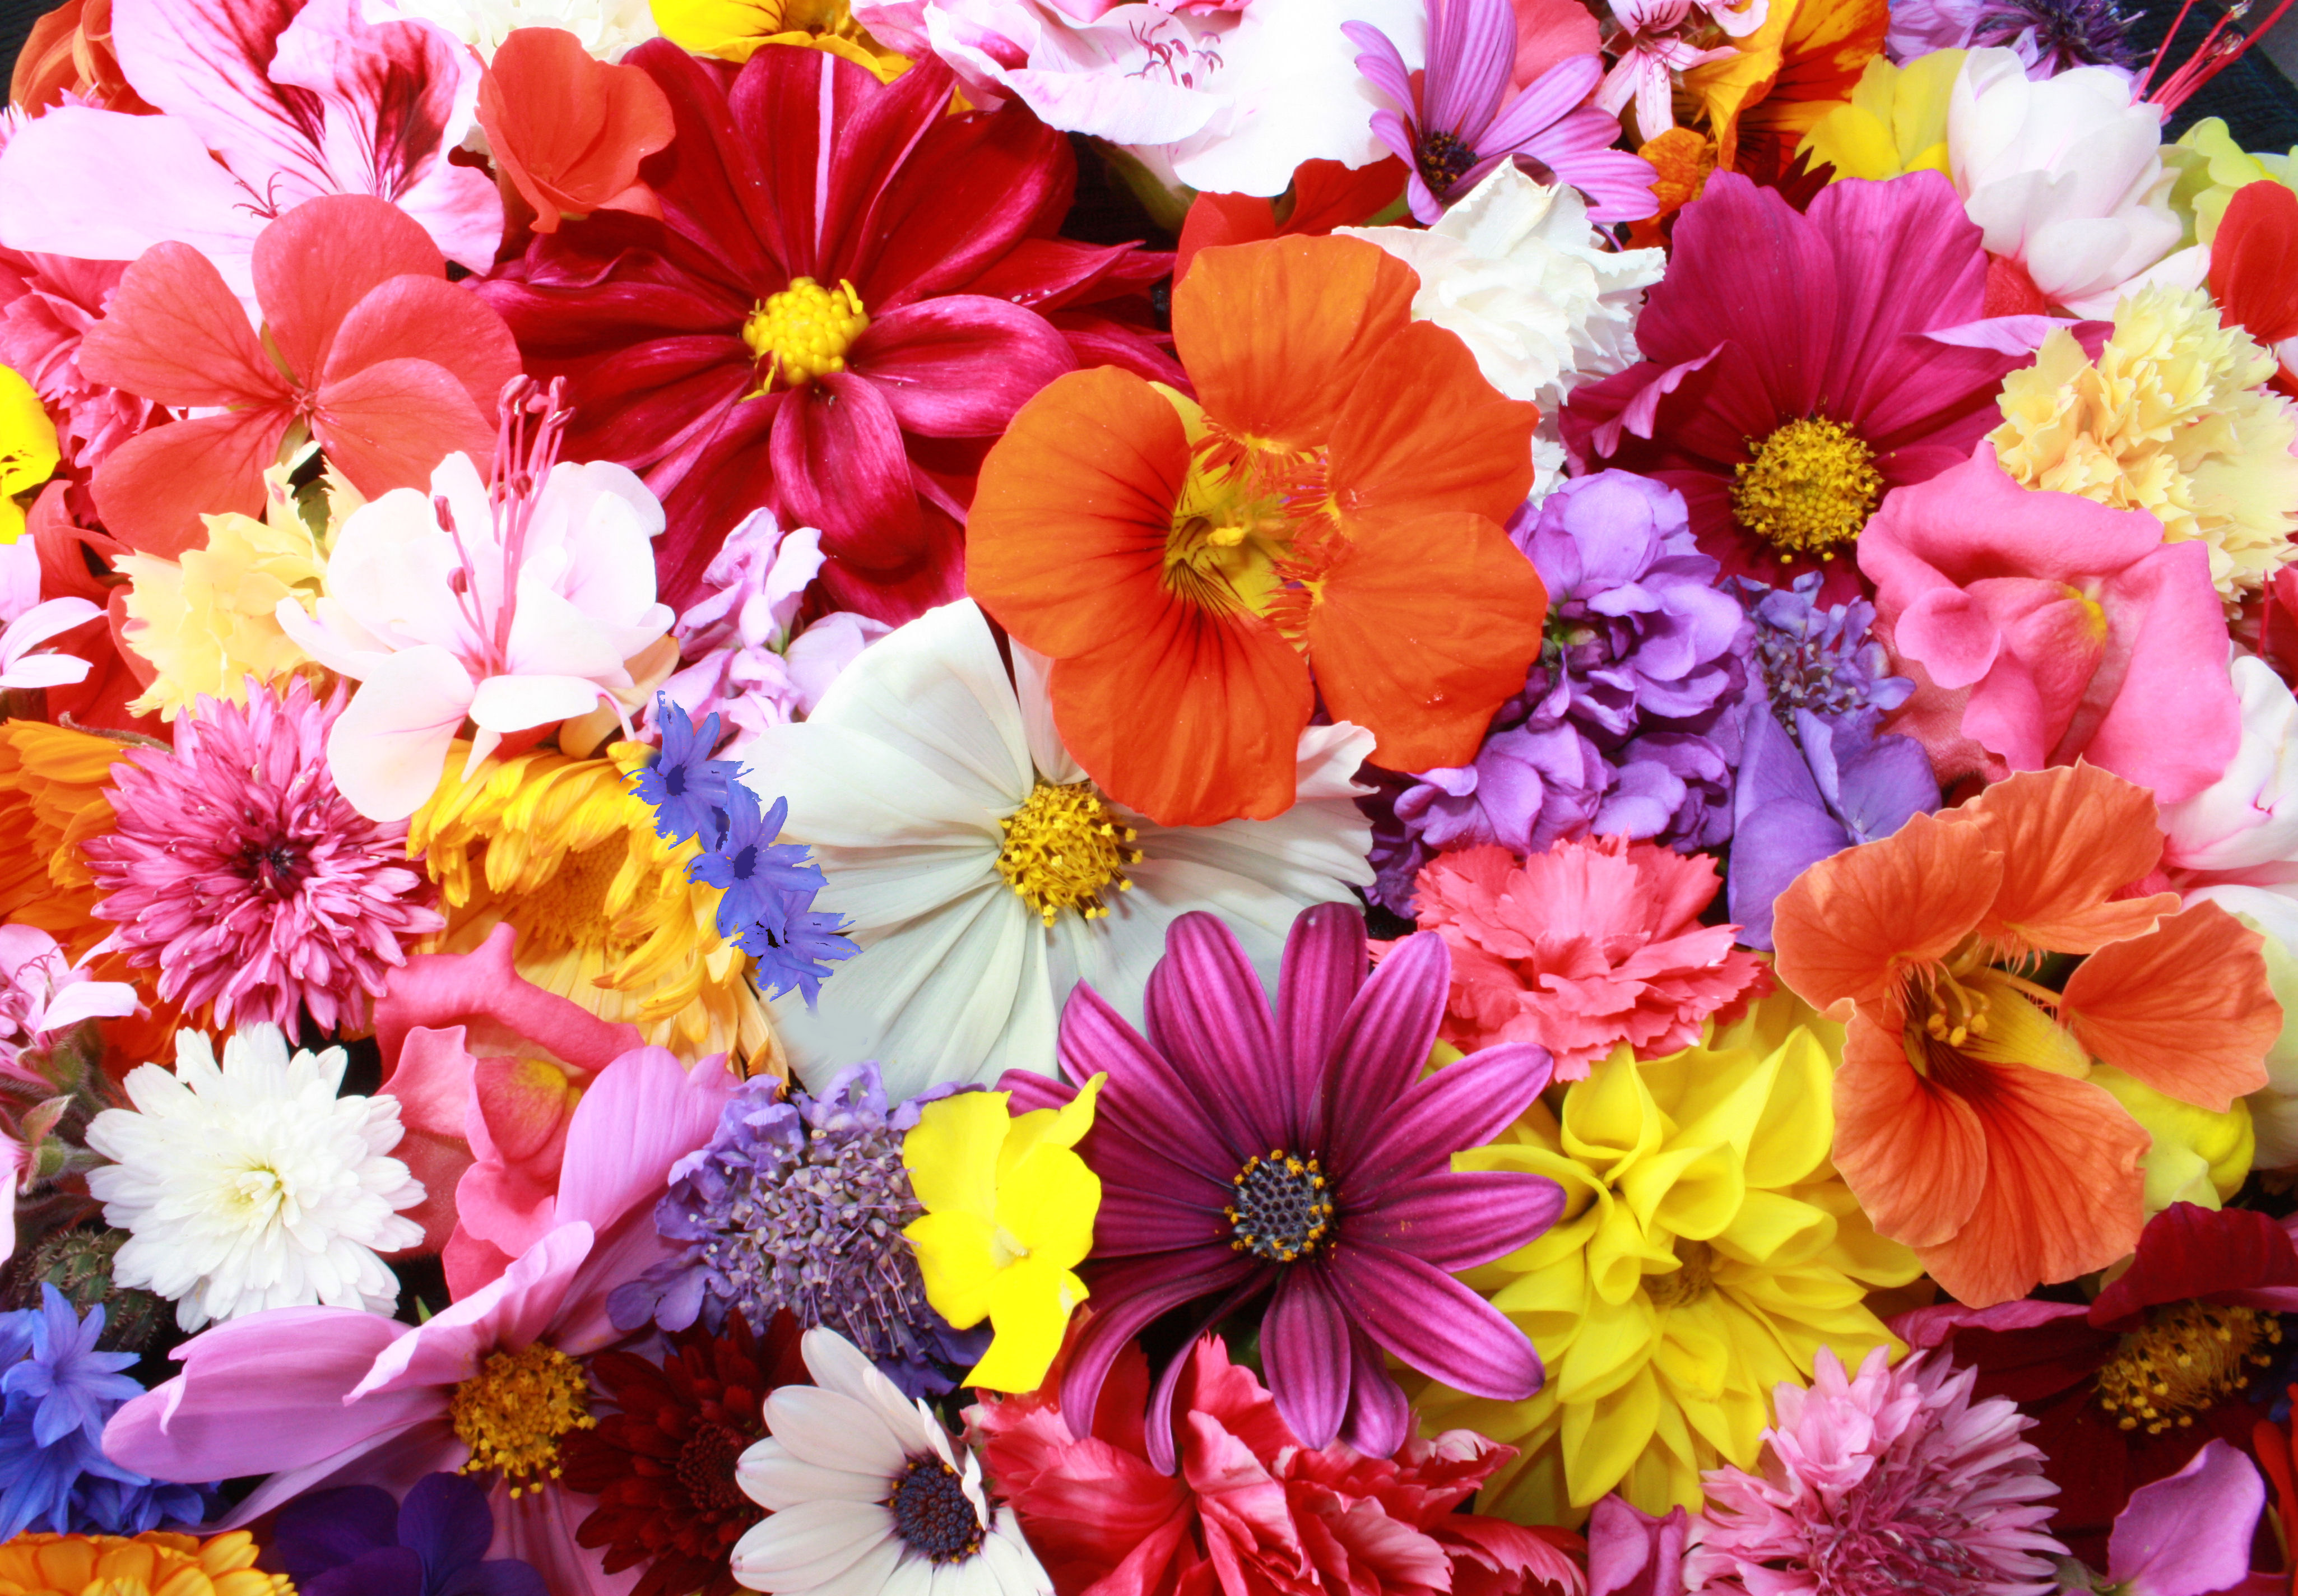 2048x1152 colorful hd flowers 2048x1152 resolution hd 4k wallpapers